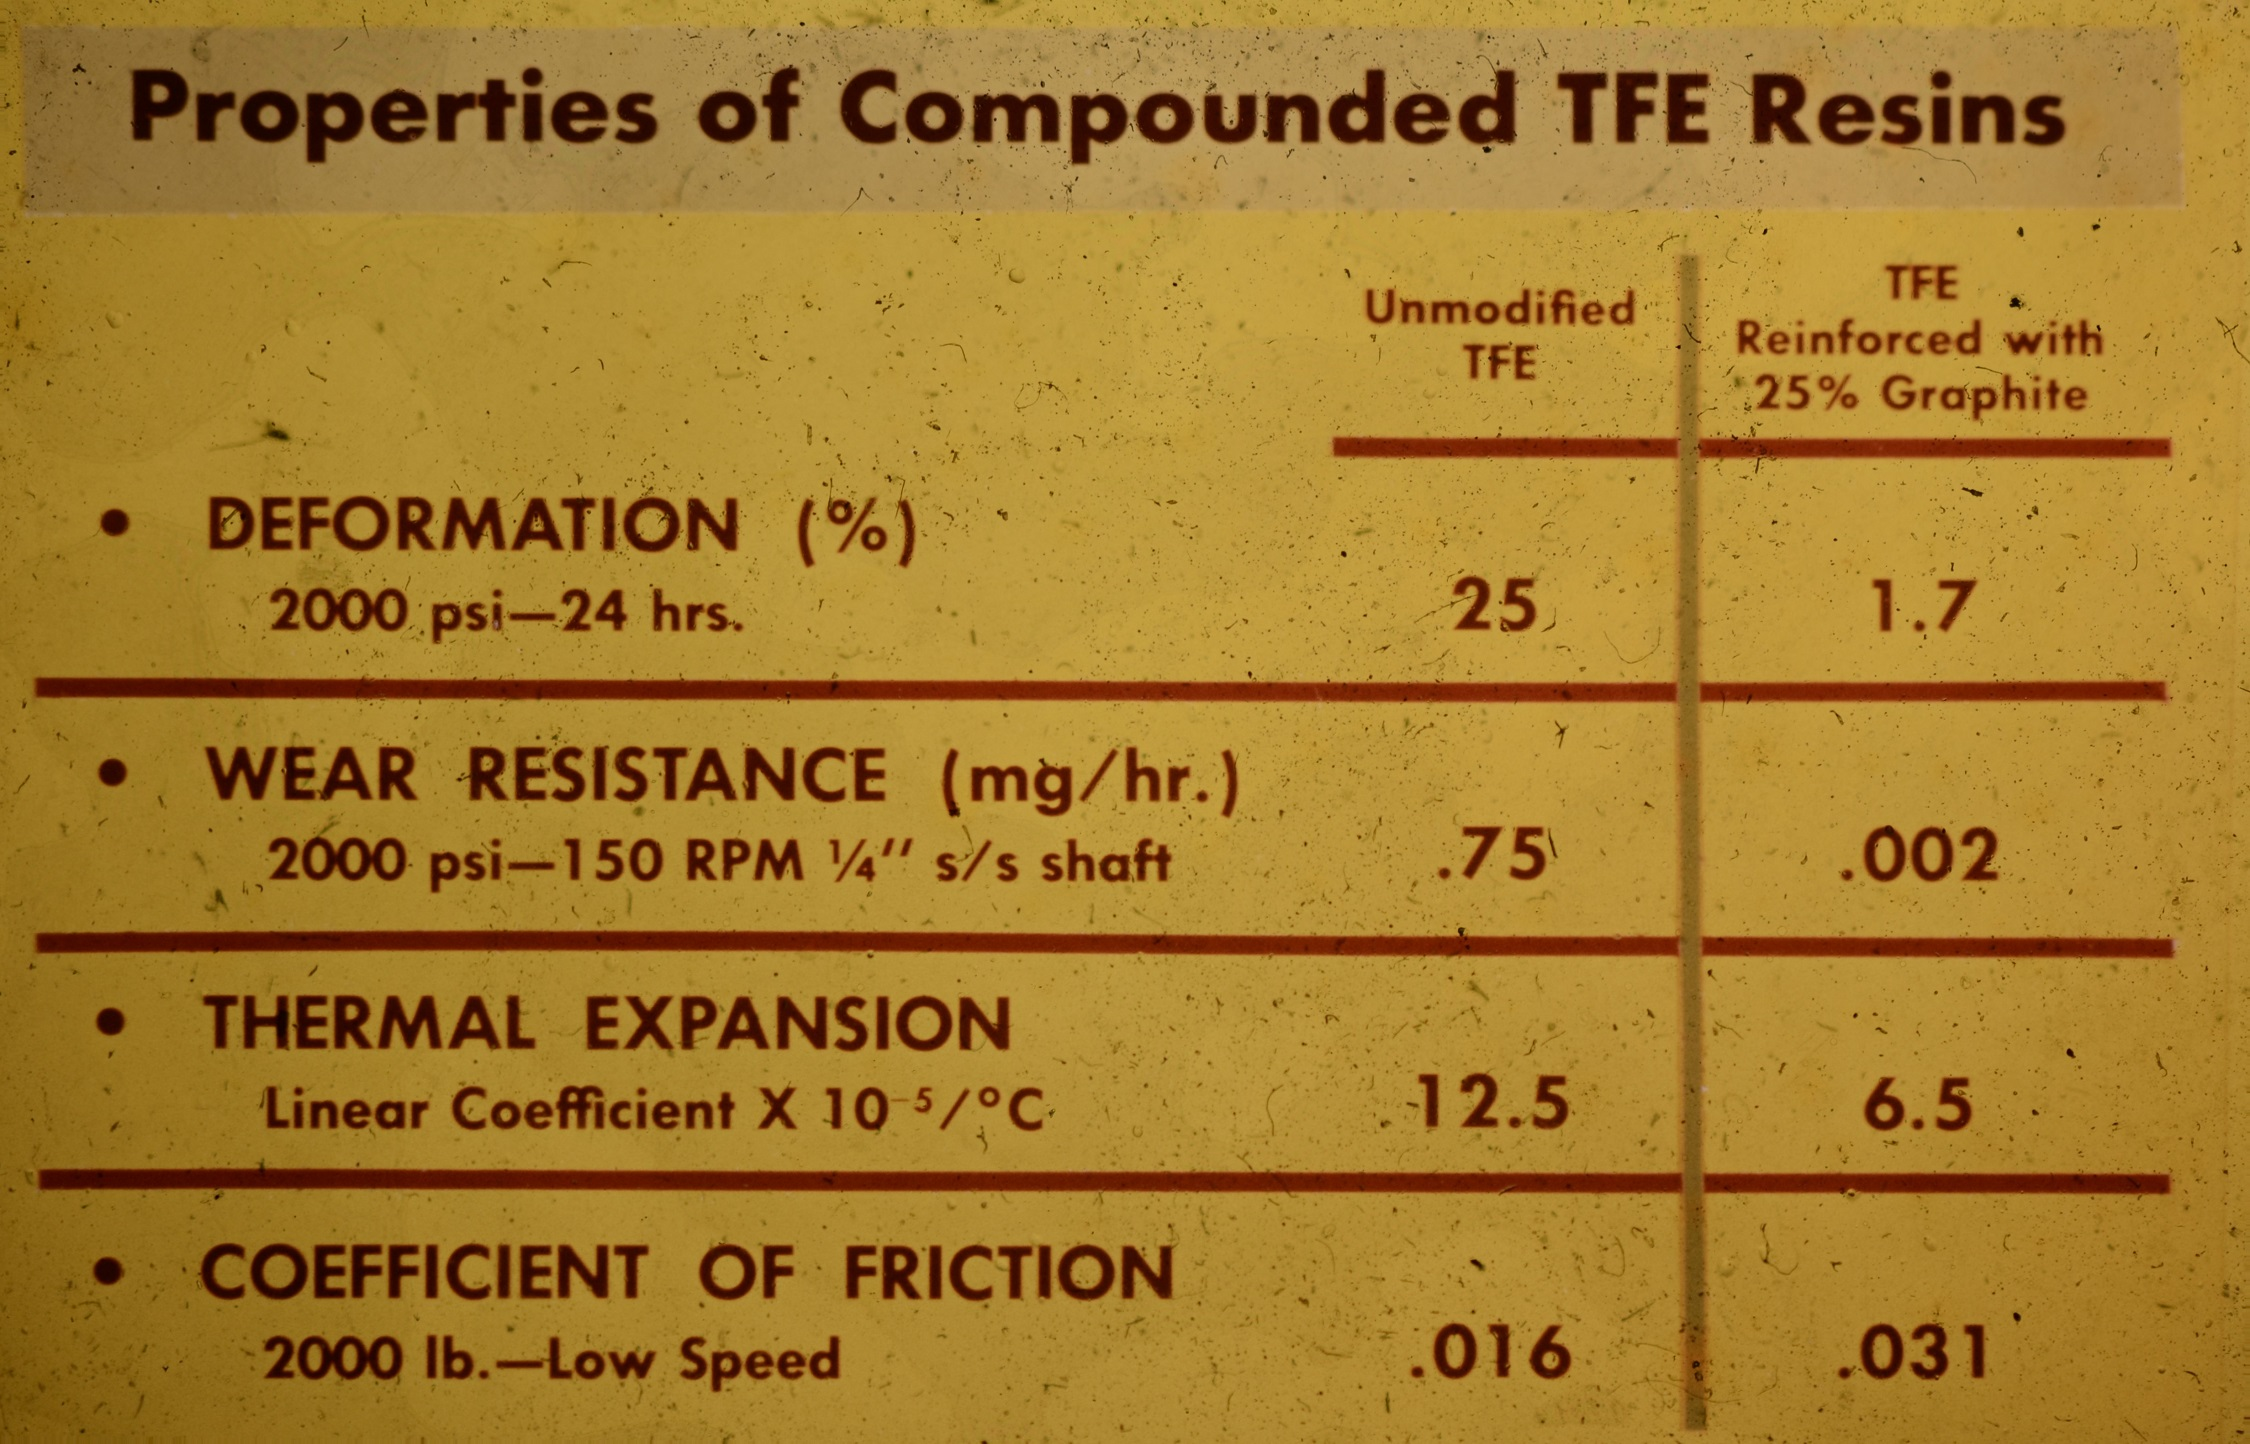 Properties of Compounded TFE Resins - Balfor Industries, Inc..jpg